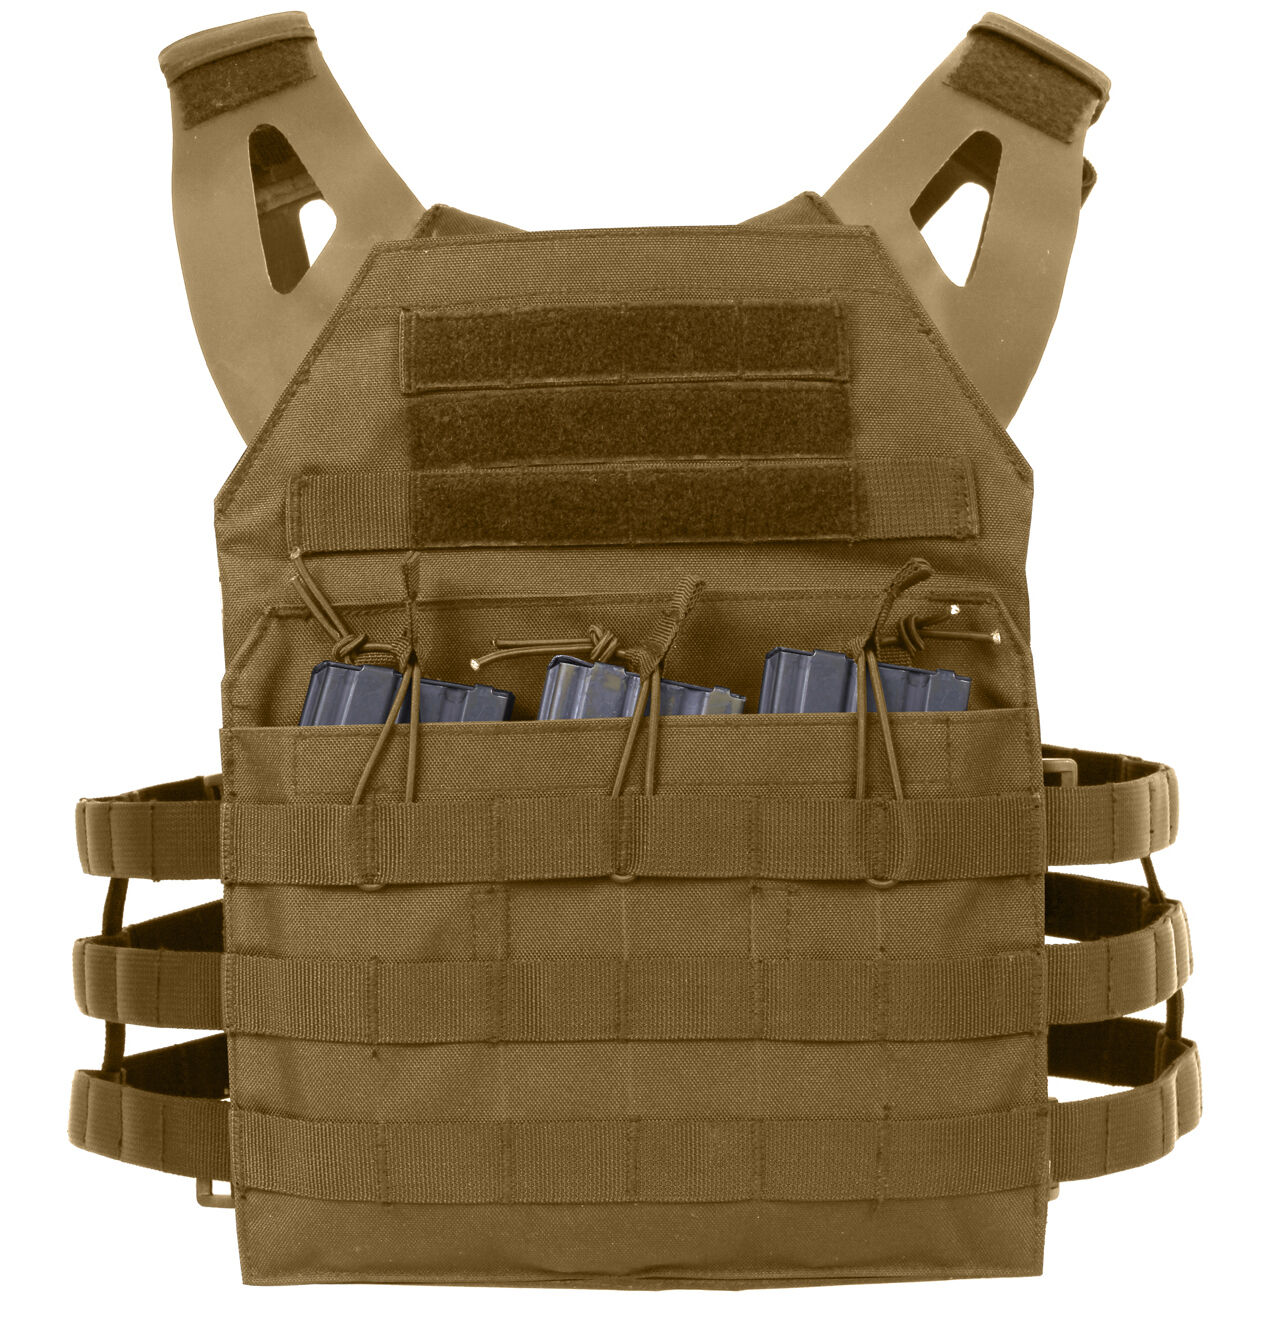 Tactical light weight plate carrier vest modular coyote brown redhco 55892